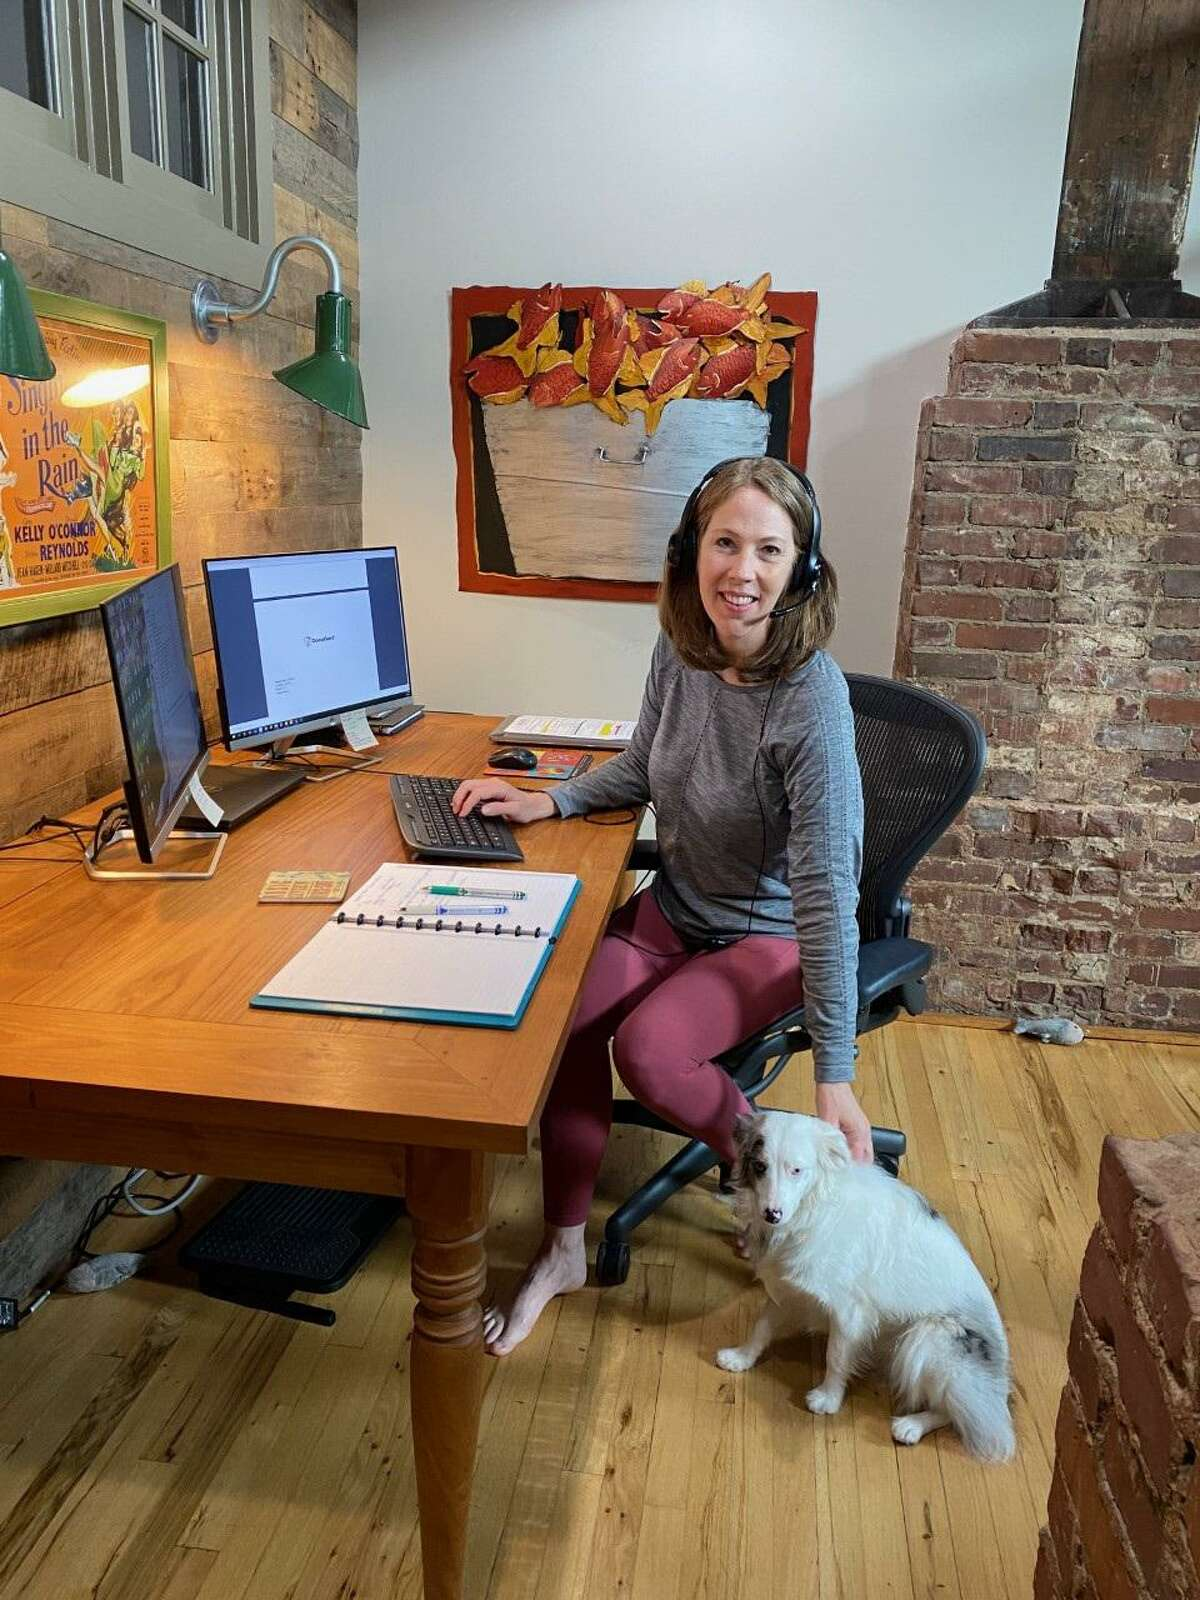 One of the first things Atlanta-based insurance company accountant Amanda Quintana, seen here with the family's COVID-19 rescue Trixie, did after her employer sent workers home in March 2020 was to go shopping for more yoga clothing, which quickly became her go-to pandemic wardrobe.